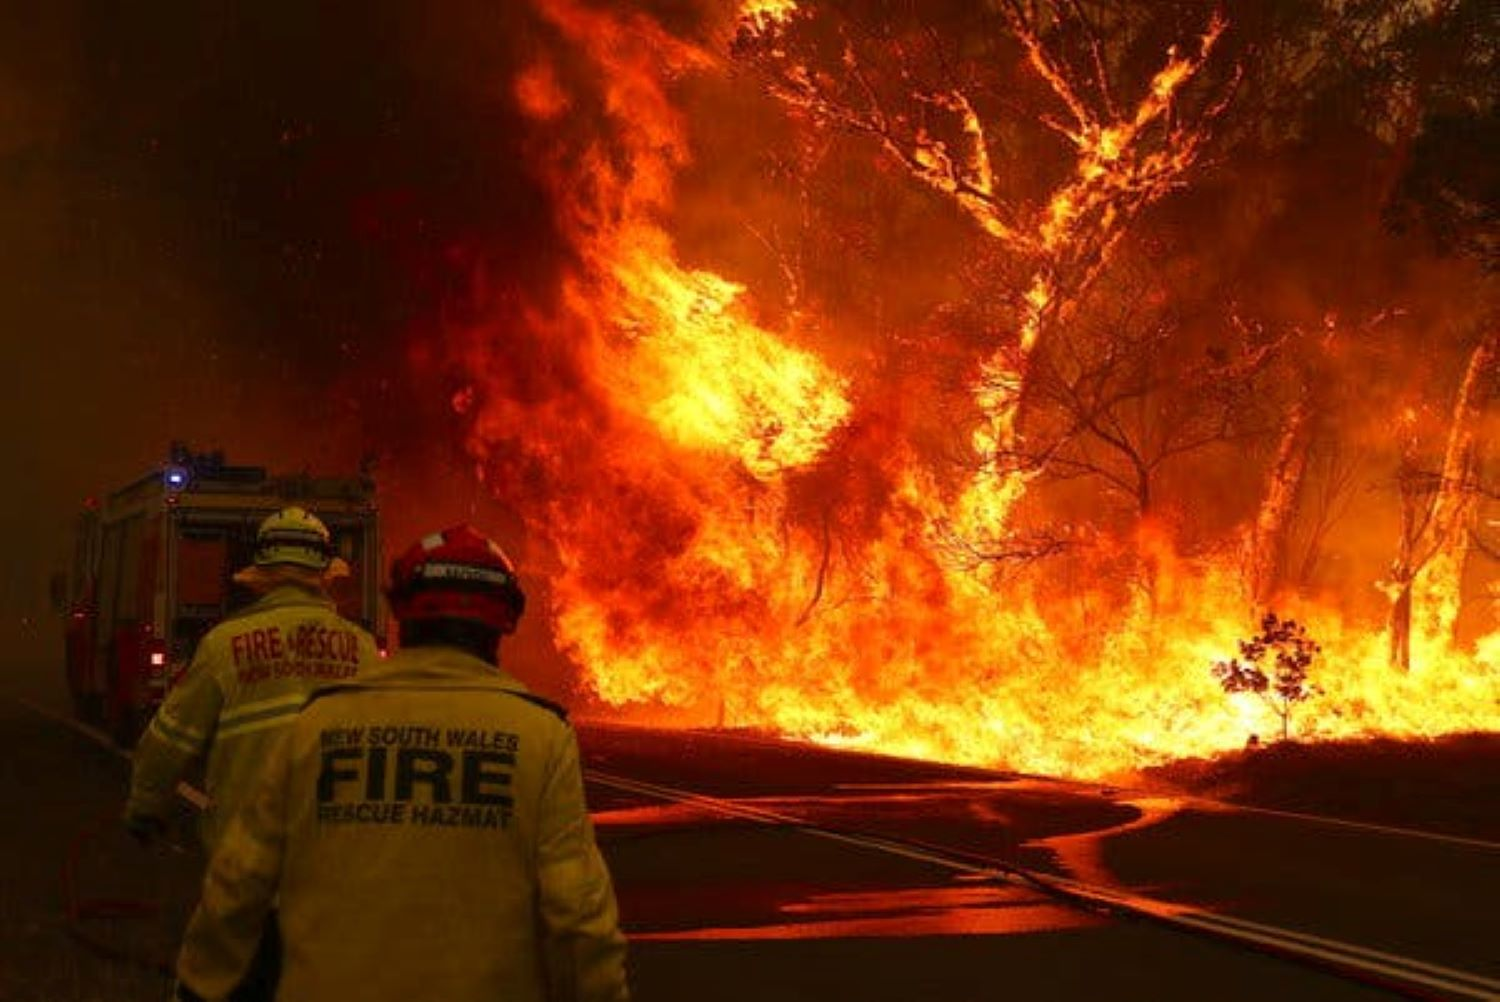 Australia PM Scott Morrison visits beleaguered firefighters, apologises for U.S. holiday